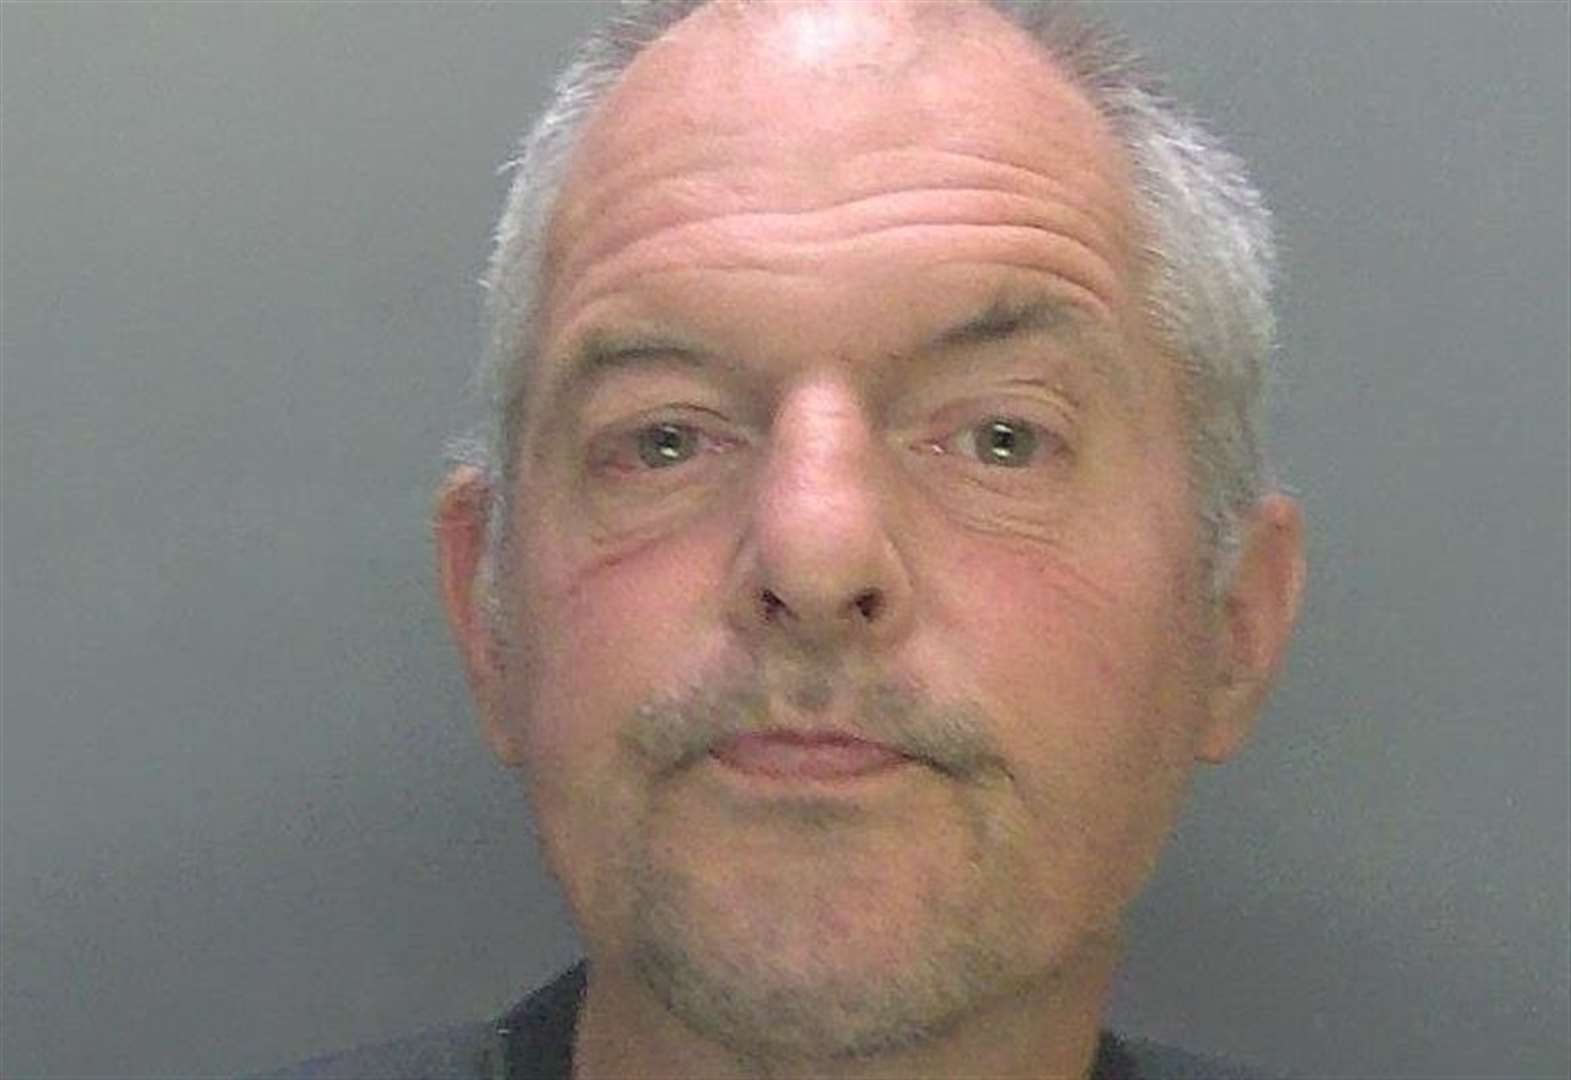 Man drunk on sherry is jailed for 21 months after attempting to burgle Cambridgeshire home